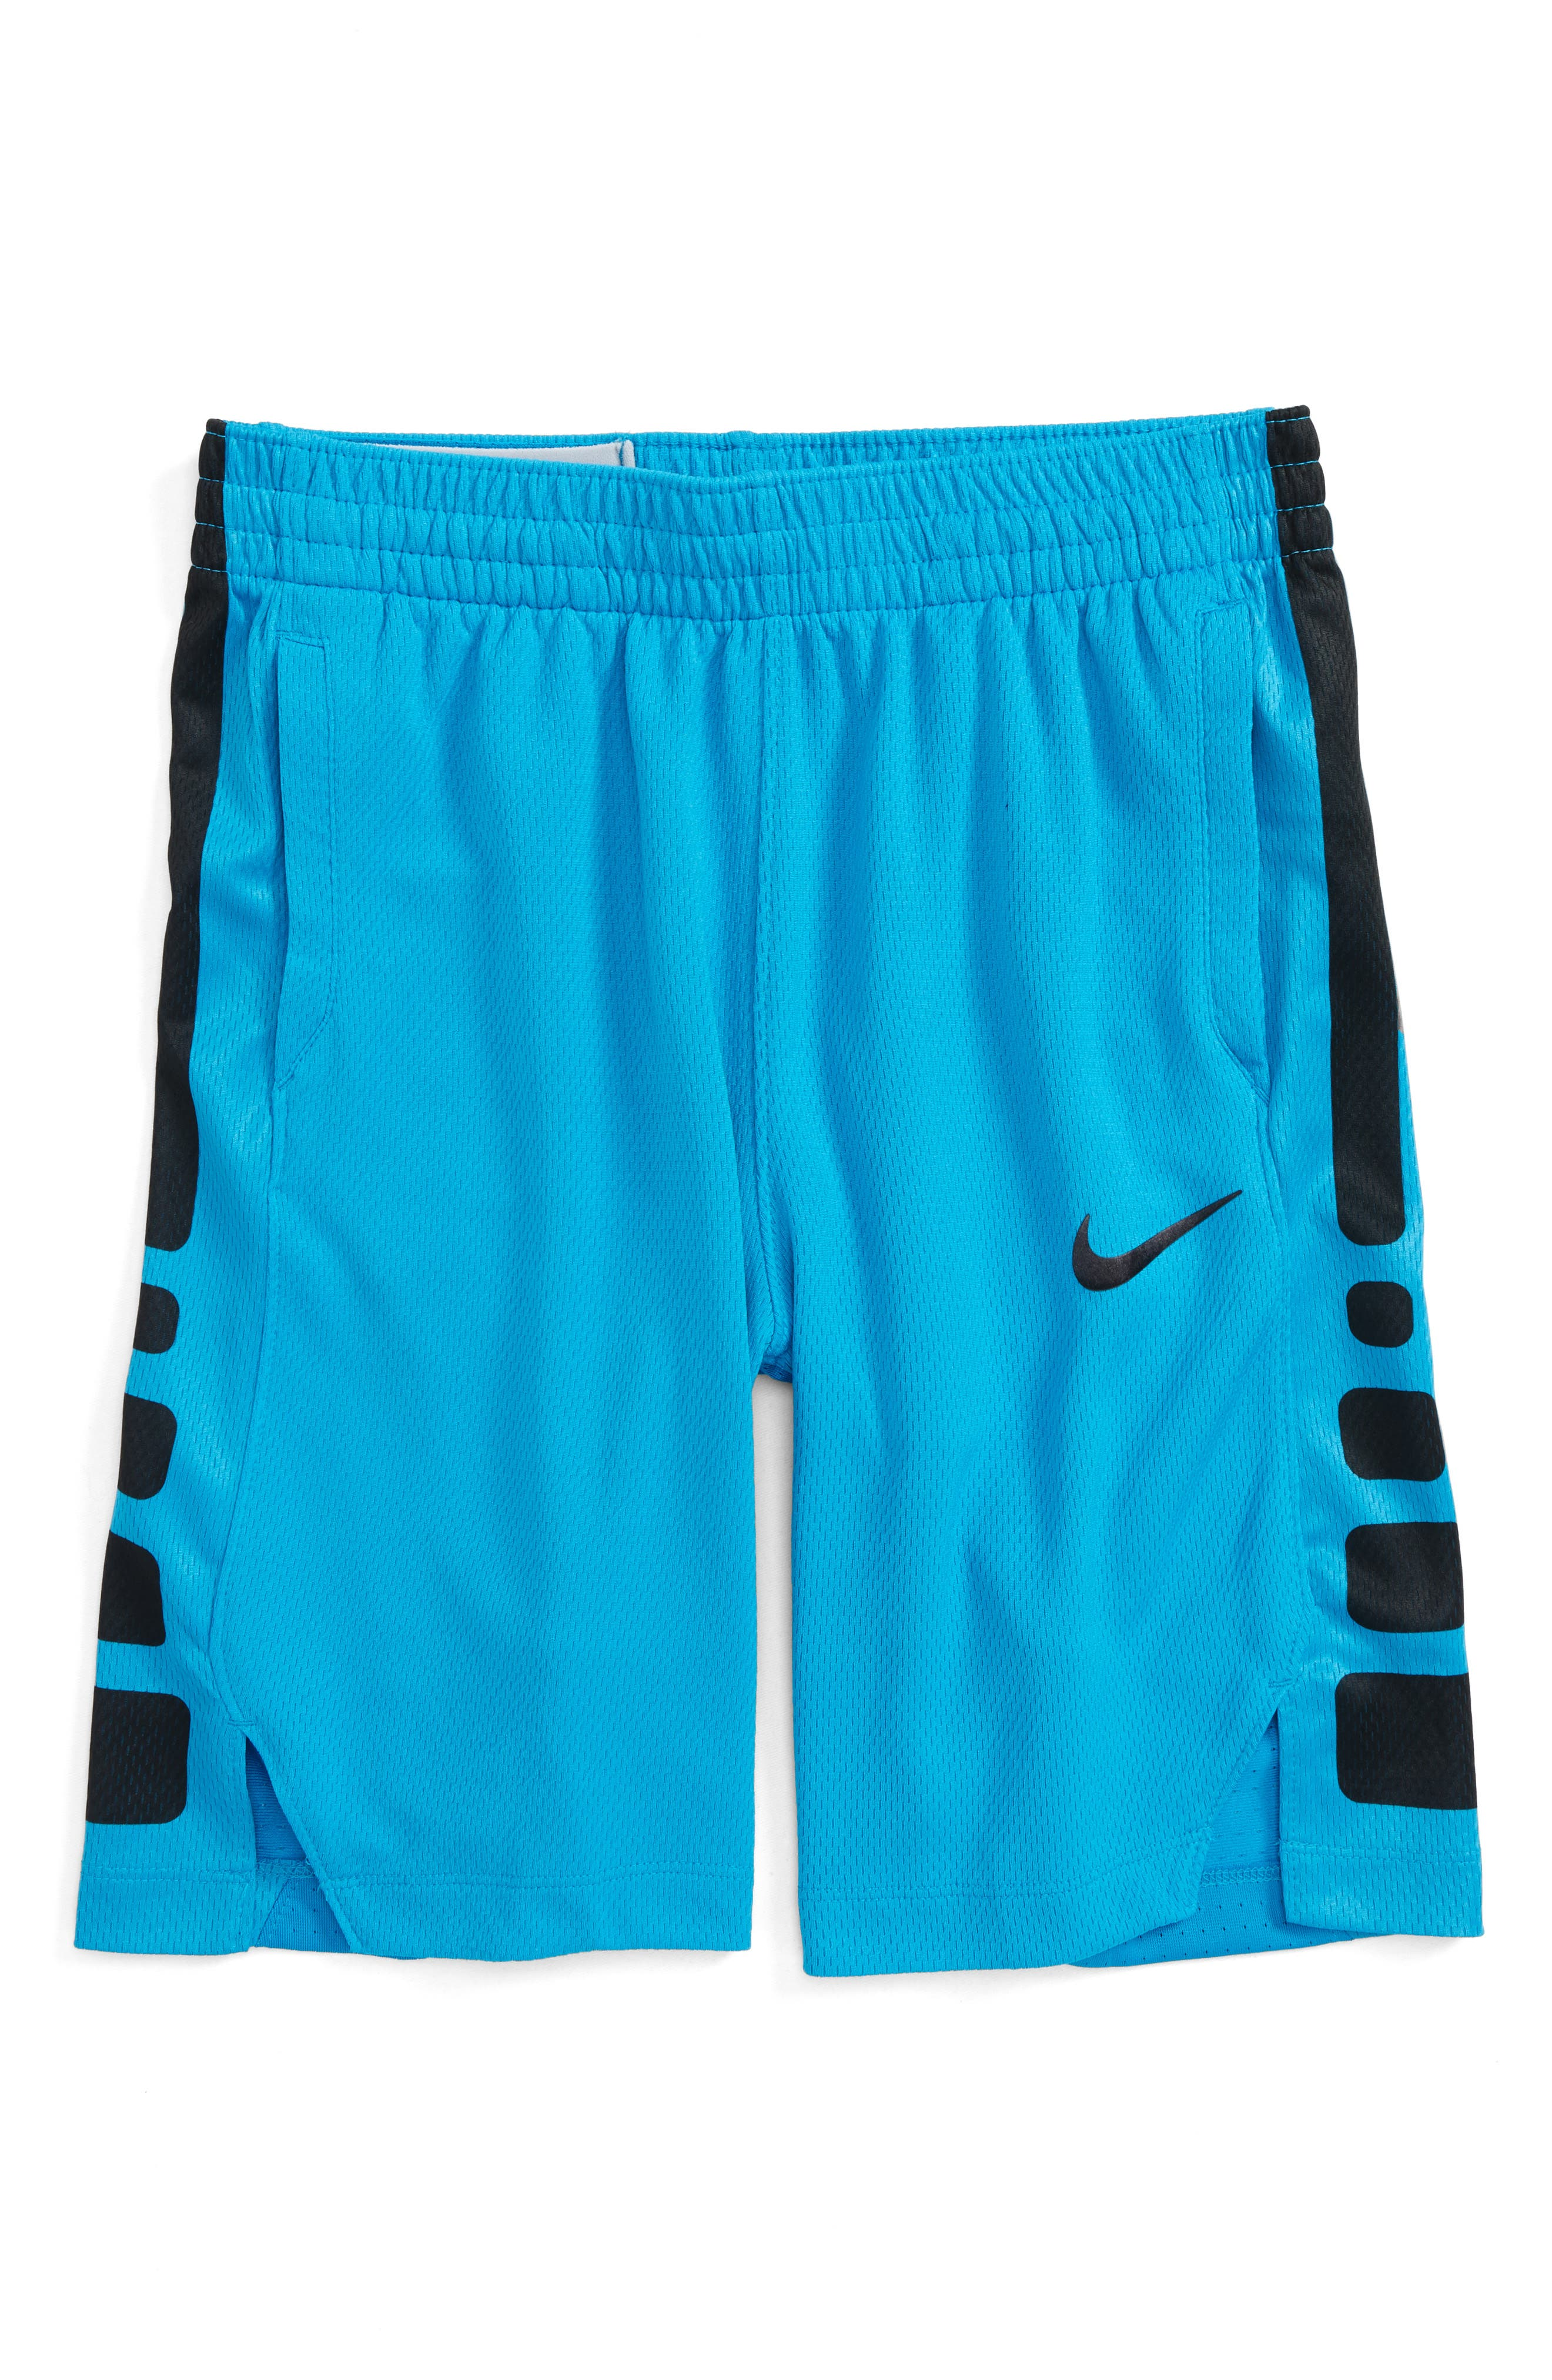 Dry Elite Basketball Shorts,                             Main thumbnail 44, color,